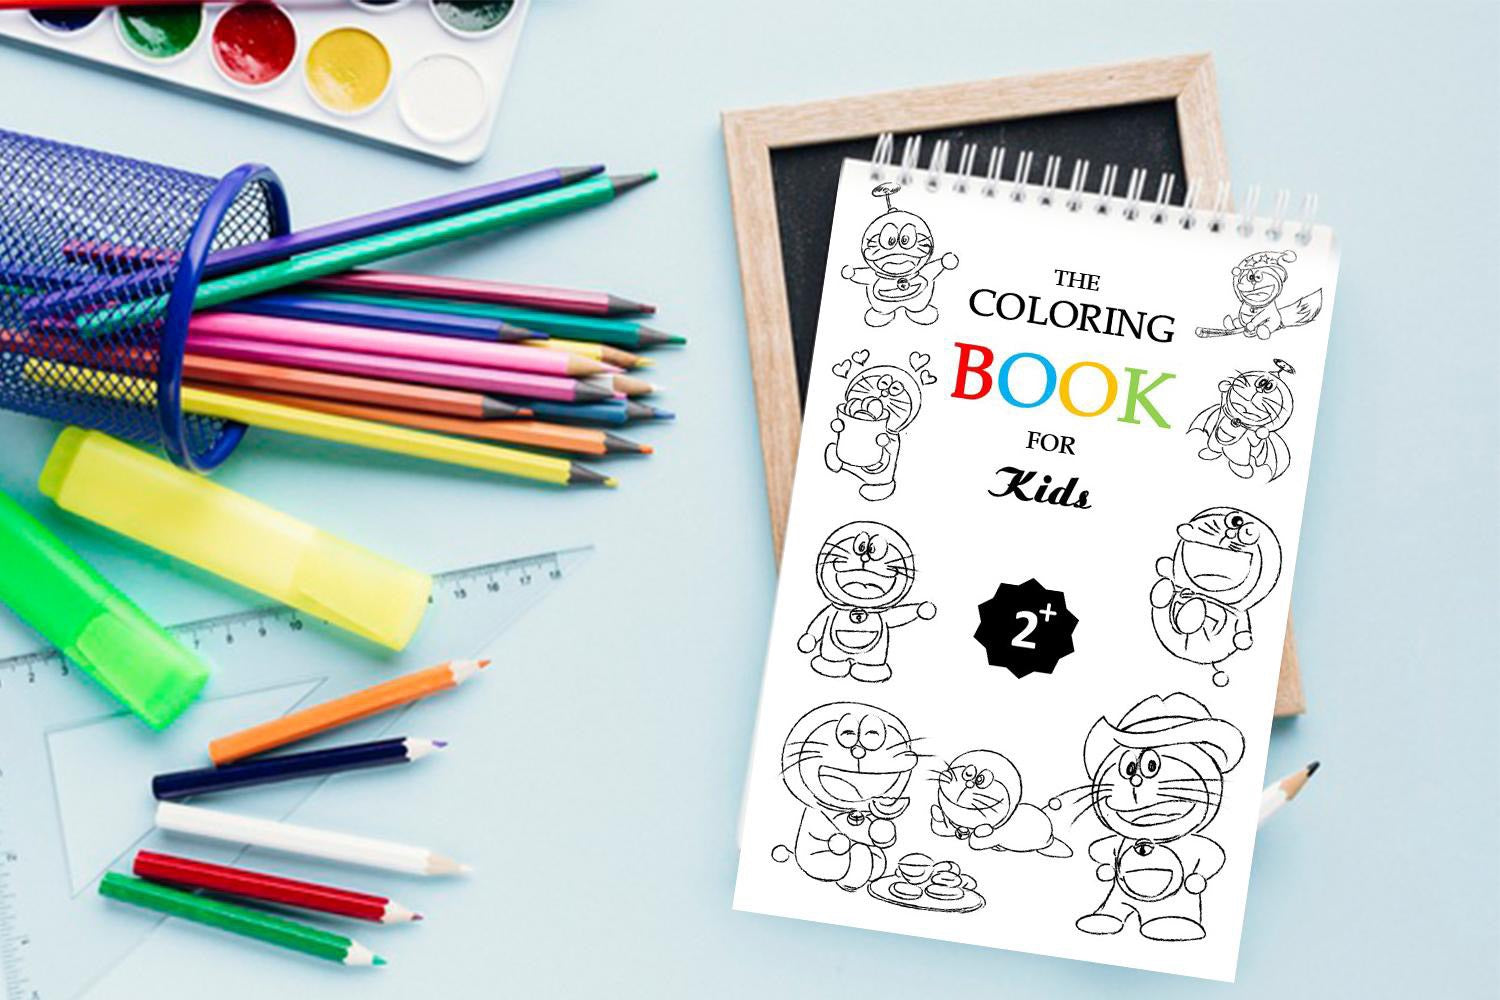 The Coloring Book For Kids 2+, Doremon Coloring Book, Kids activity coloring book, Coloring Pages, Practise Writing, Words Search, Maze Game